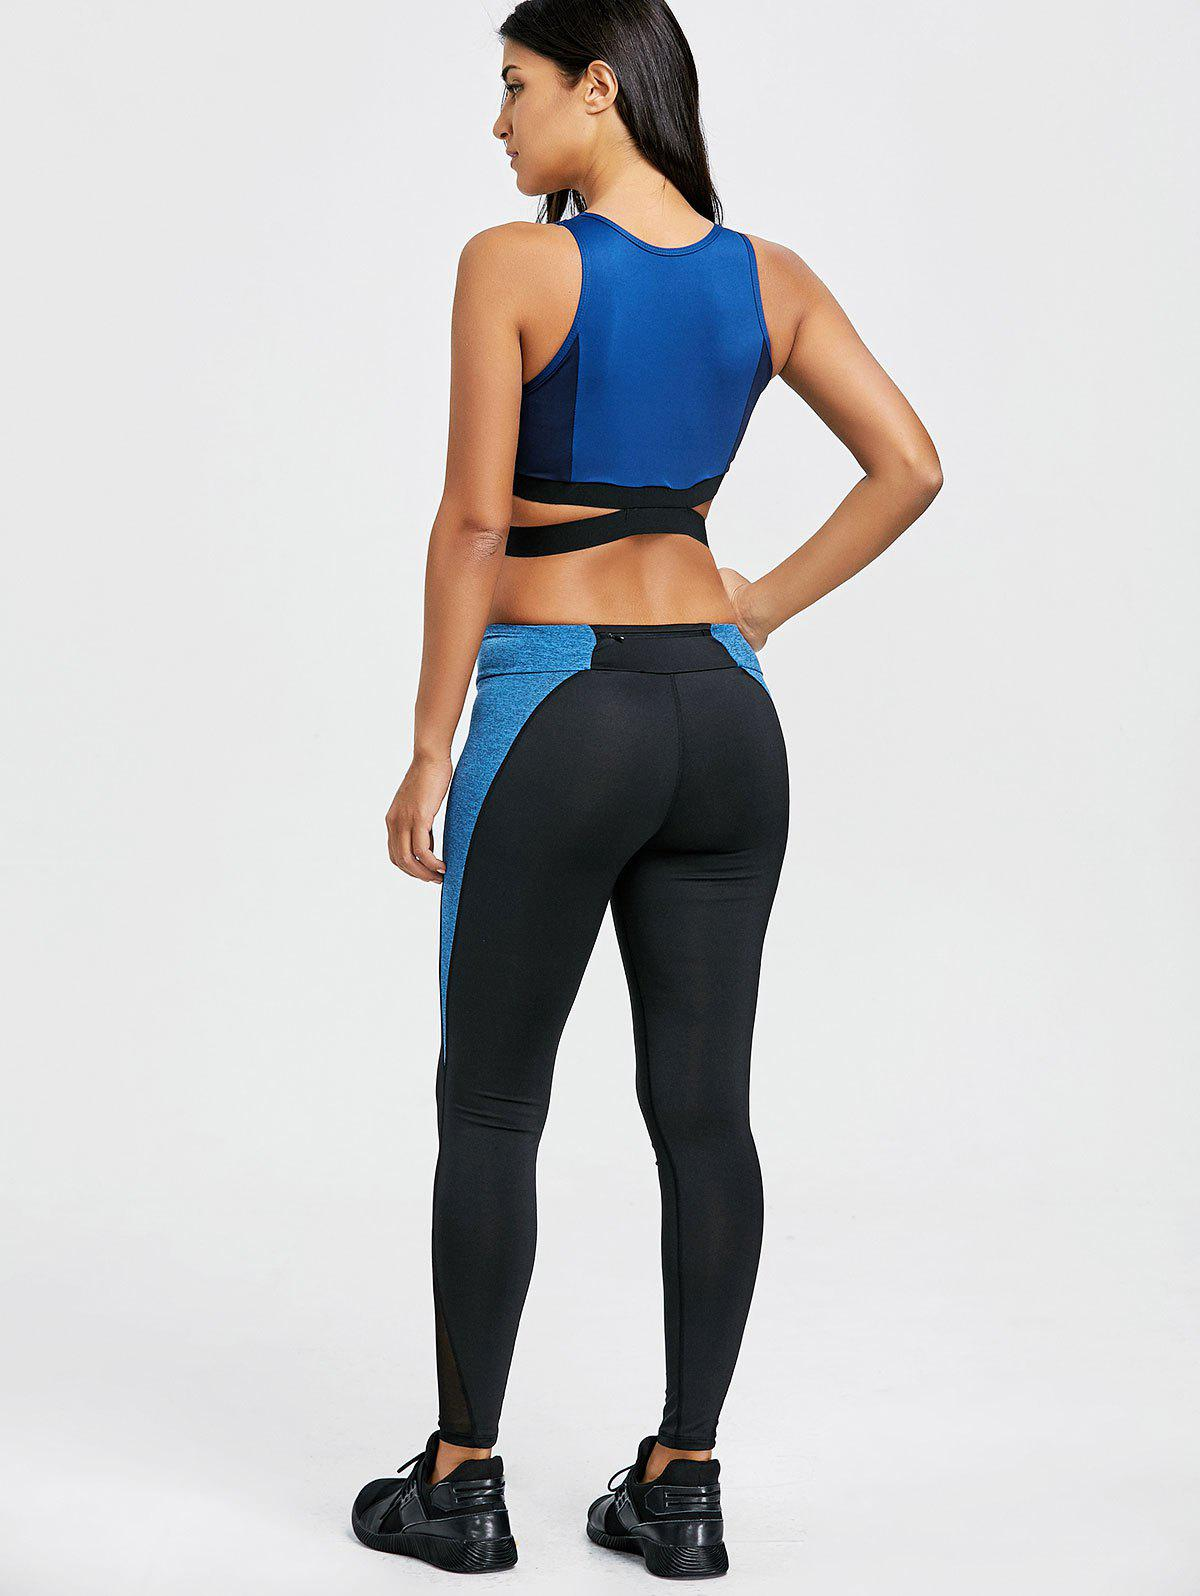 Color Block Criss Cross Three Piece Gym Outfits - BLUE M